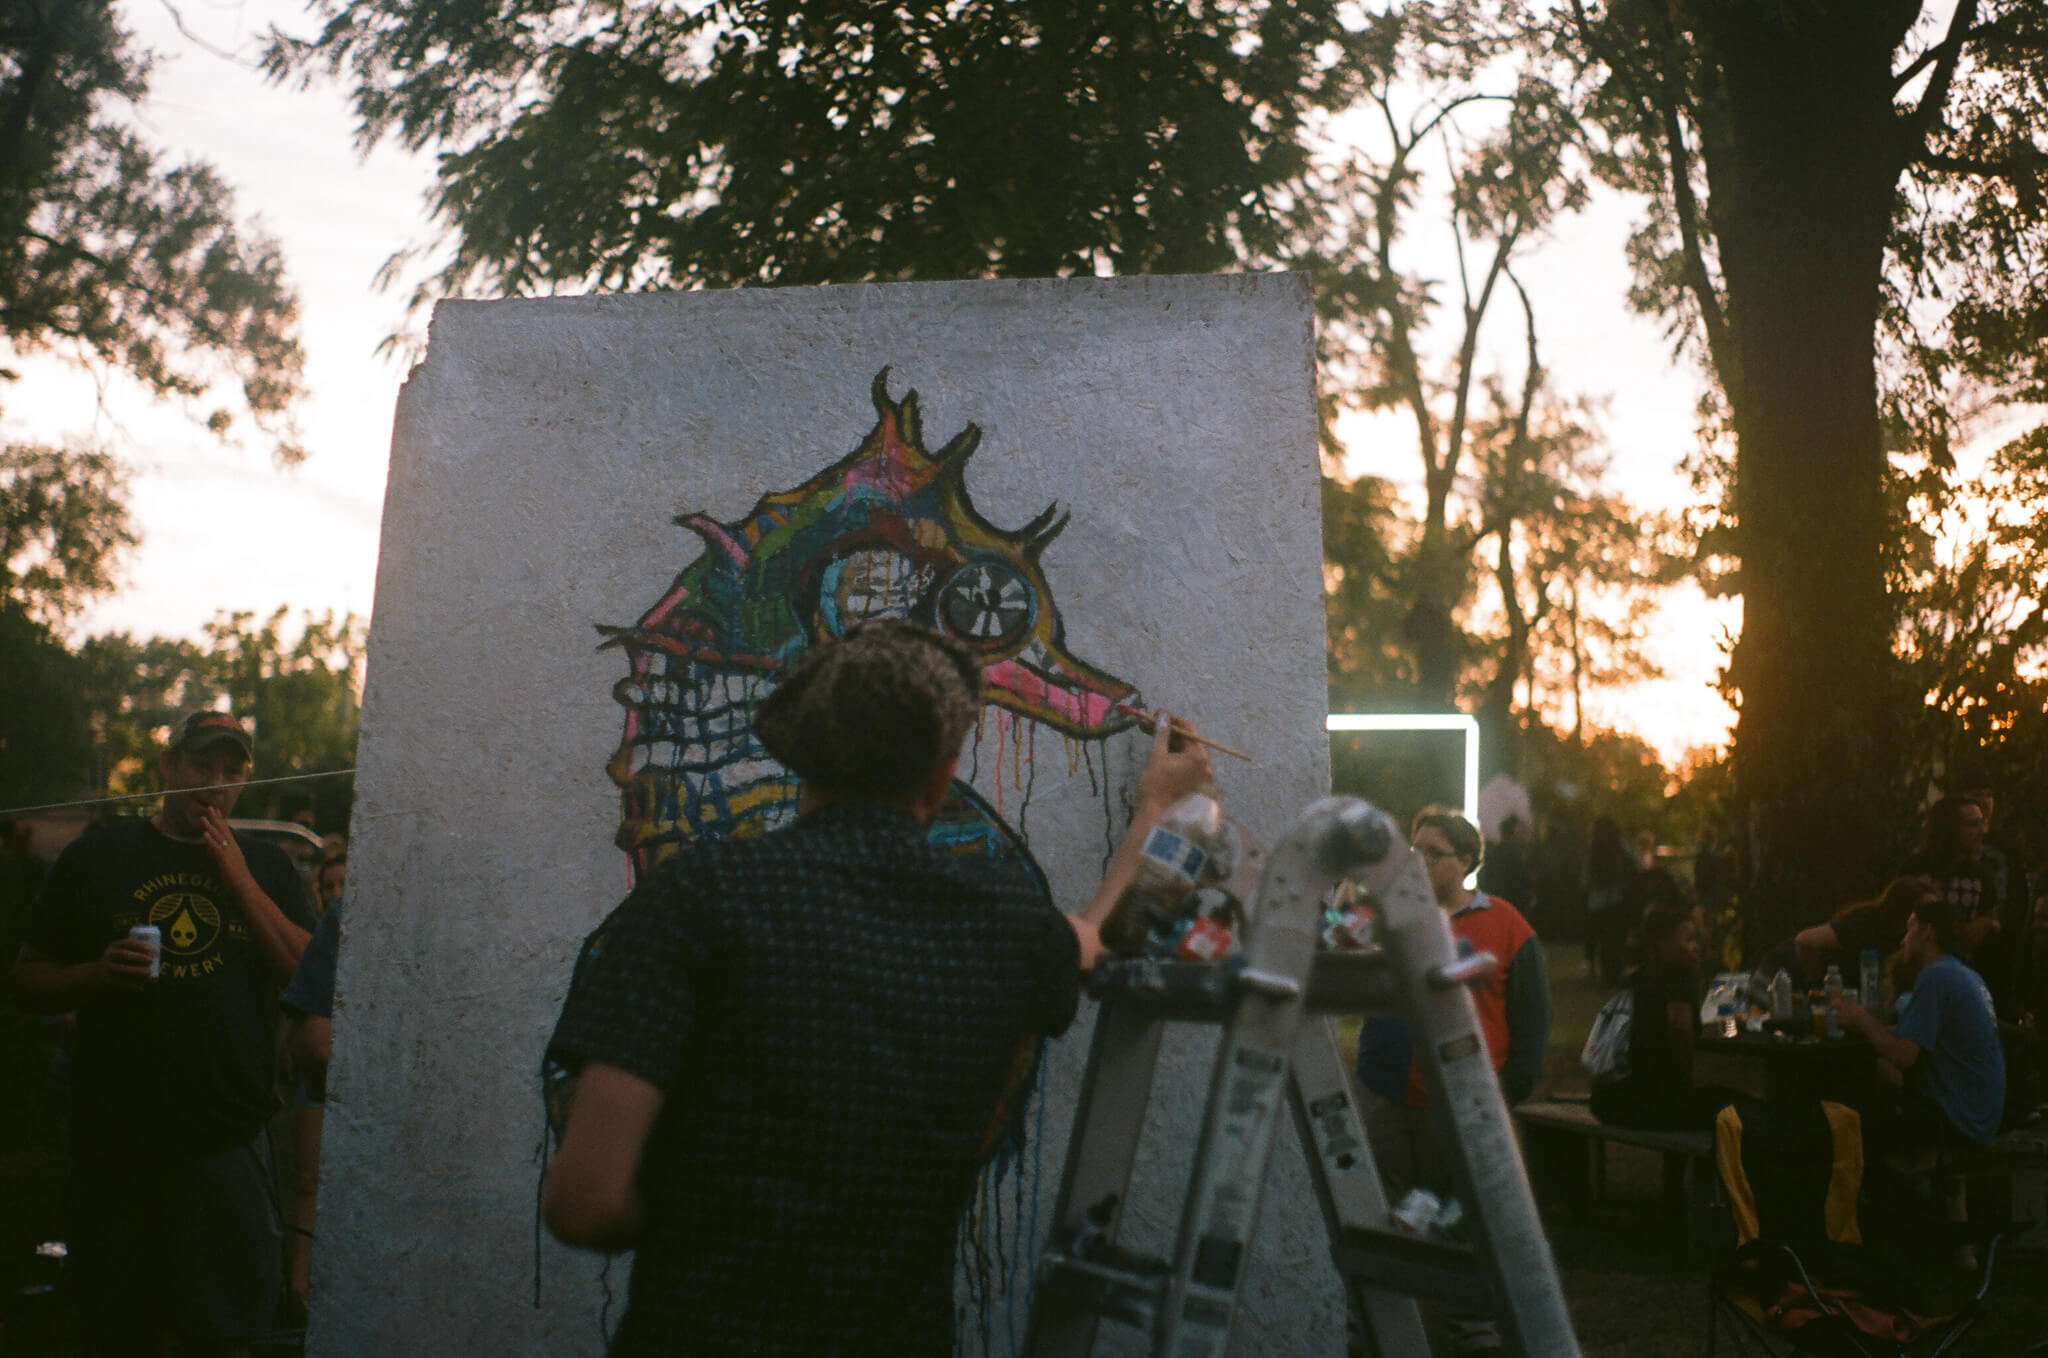 Russell Frantom  works on a large-scale painting amidst the crowd.